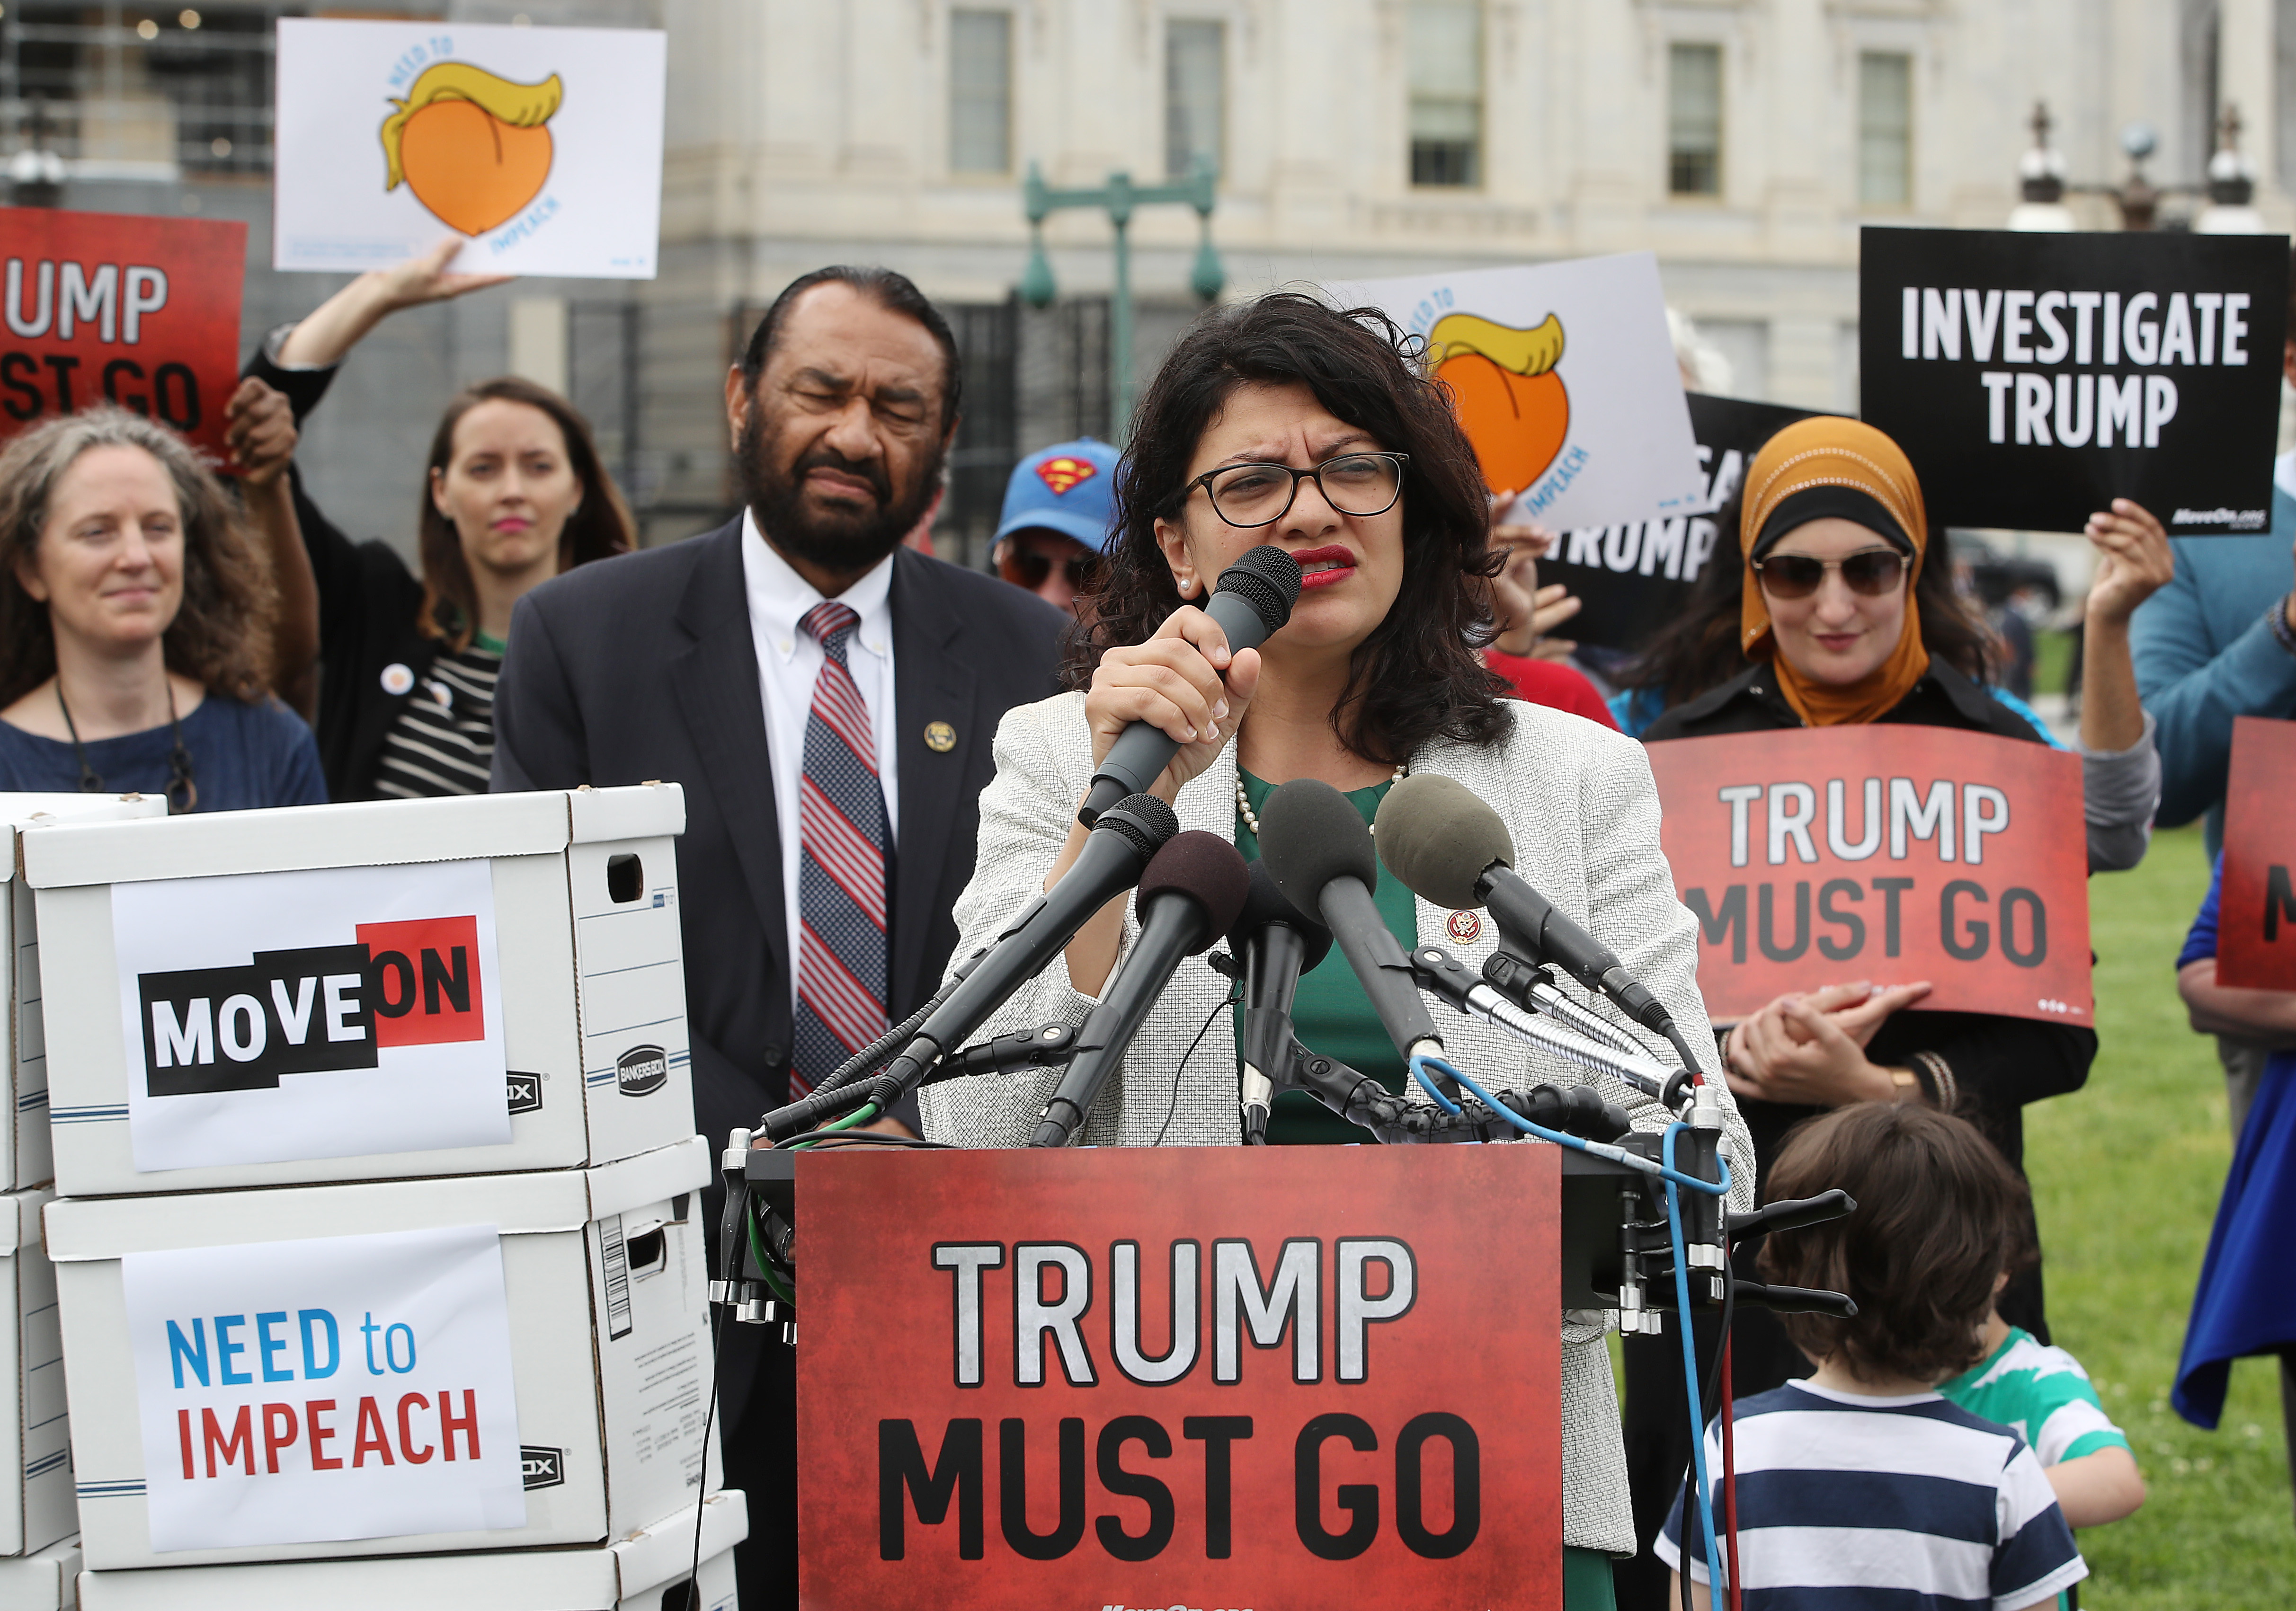 Rashida Tlaib speaks during an event with activist groups to deliver over ten million petition signatures to Congress urging the U.S. House of Representatives to start impeachment proceedings against President Donald Trump. (Mark Wilson/Getty Images)